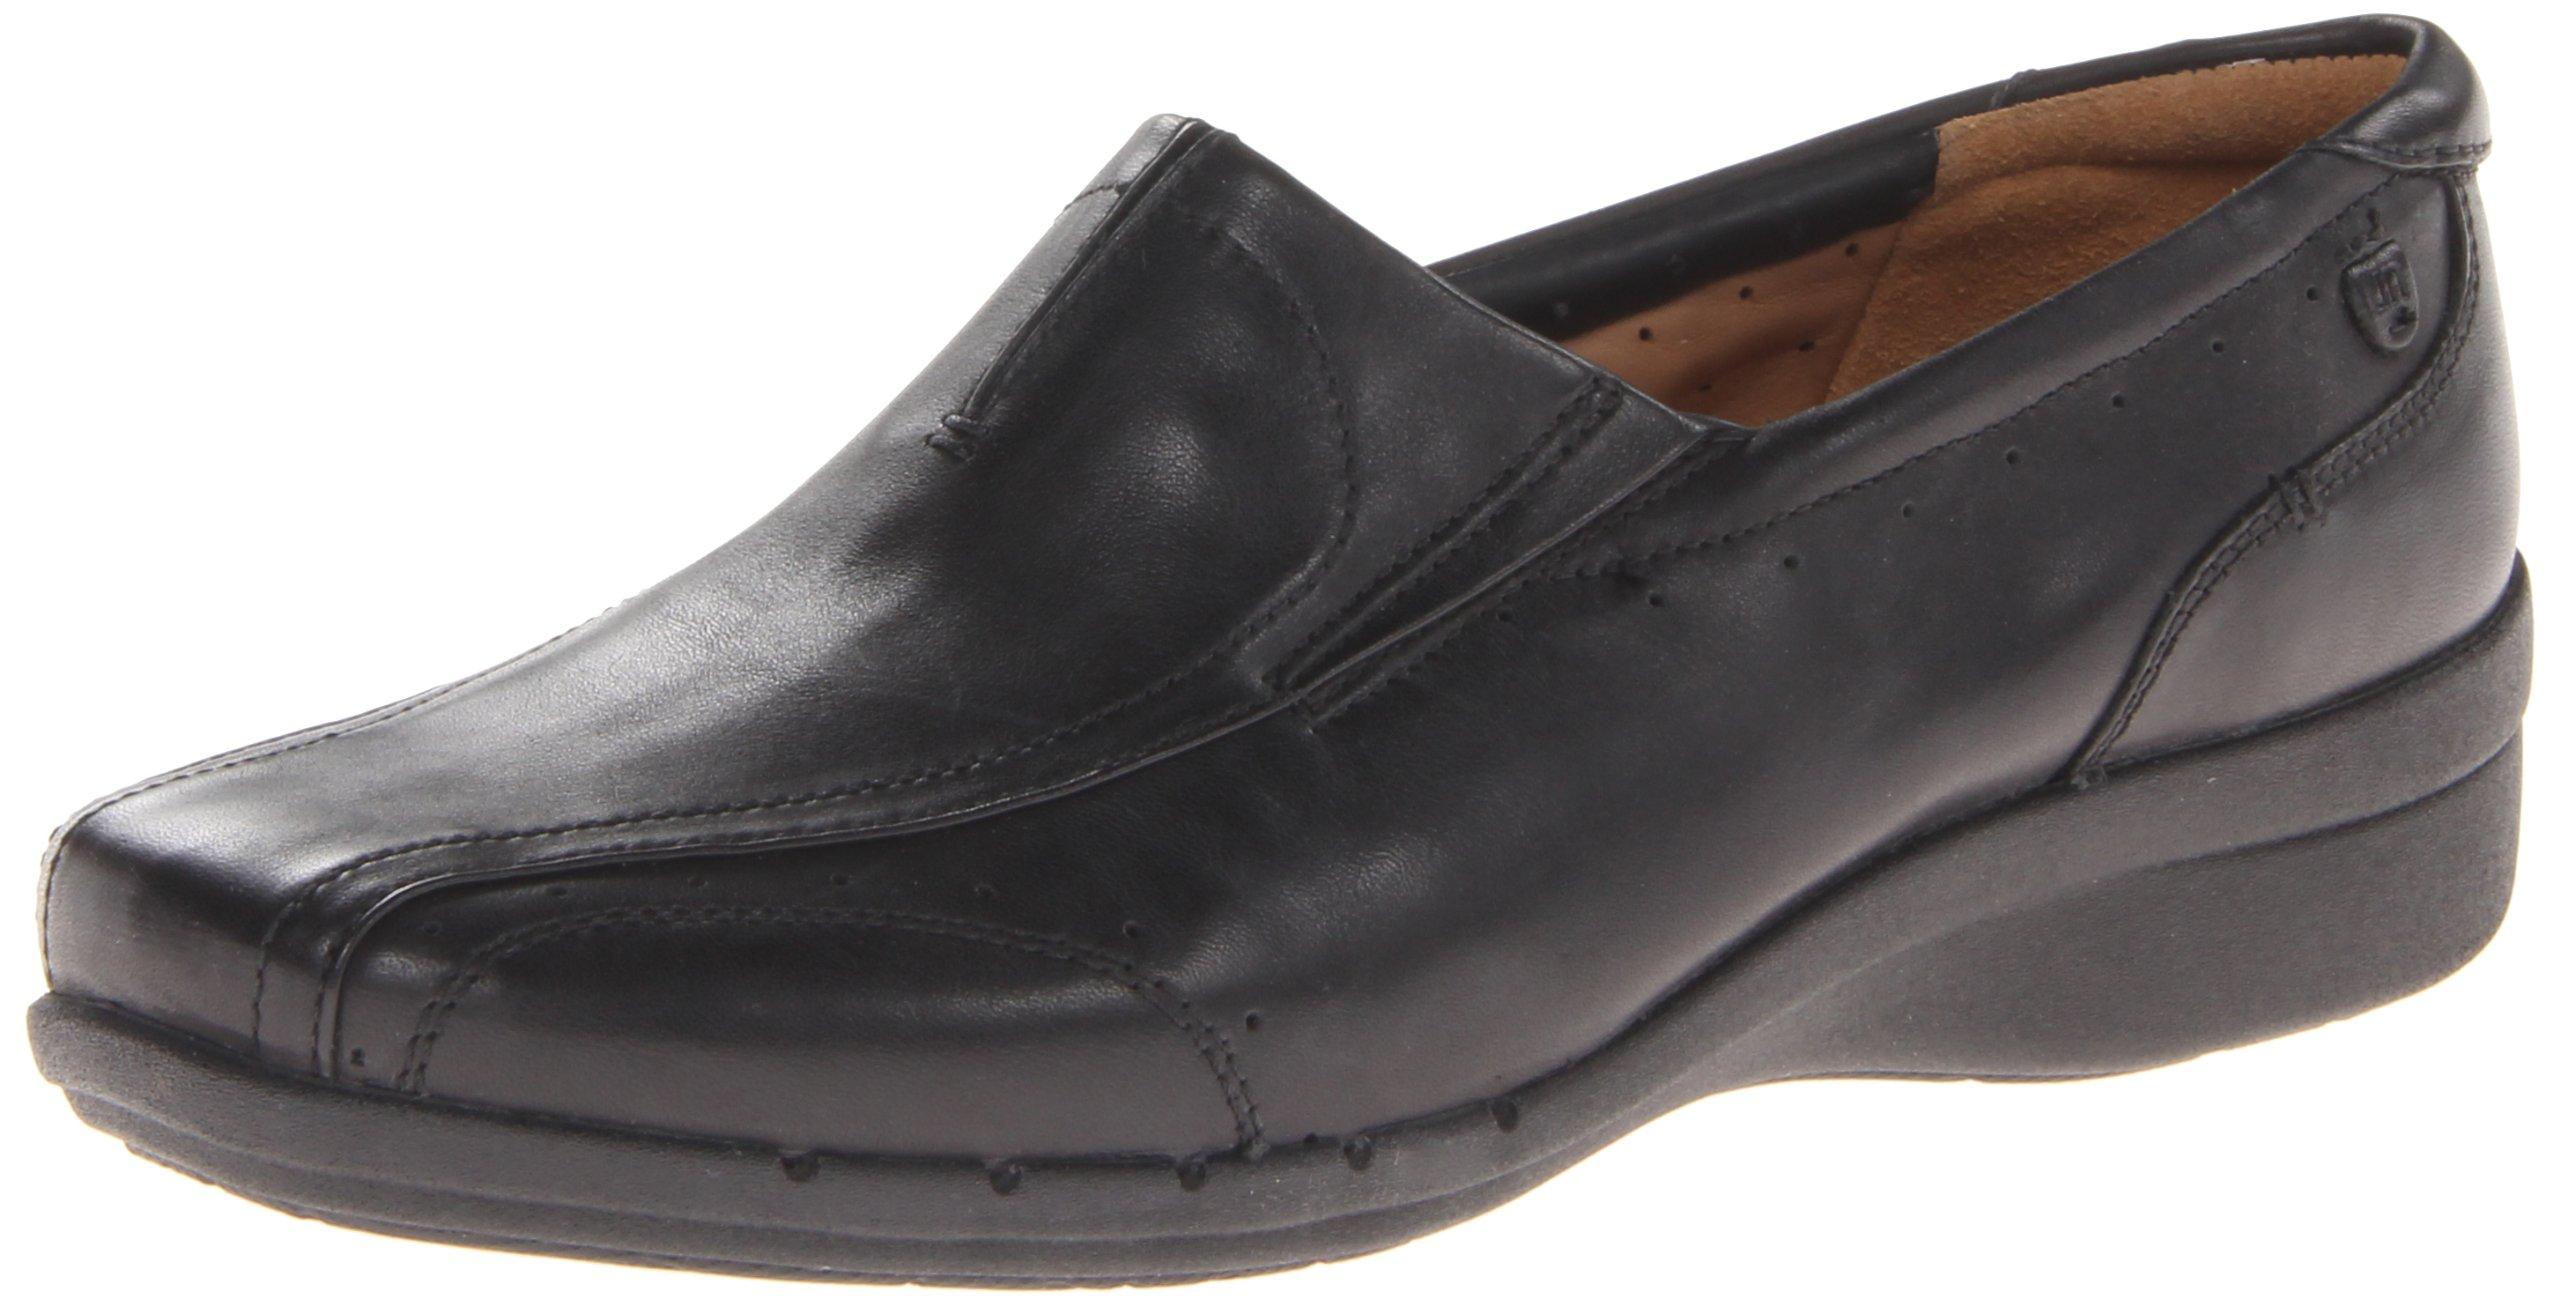 Clarks Women's Un.Clap Slip-On Shoes, Black Leather, 6.5